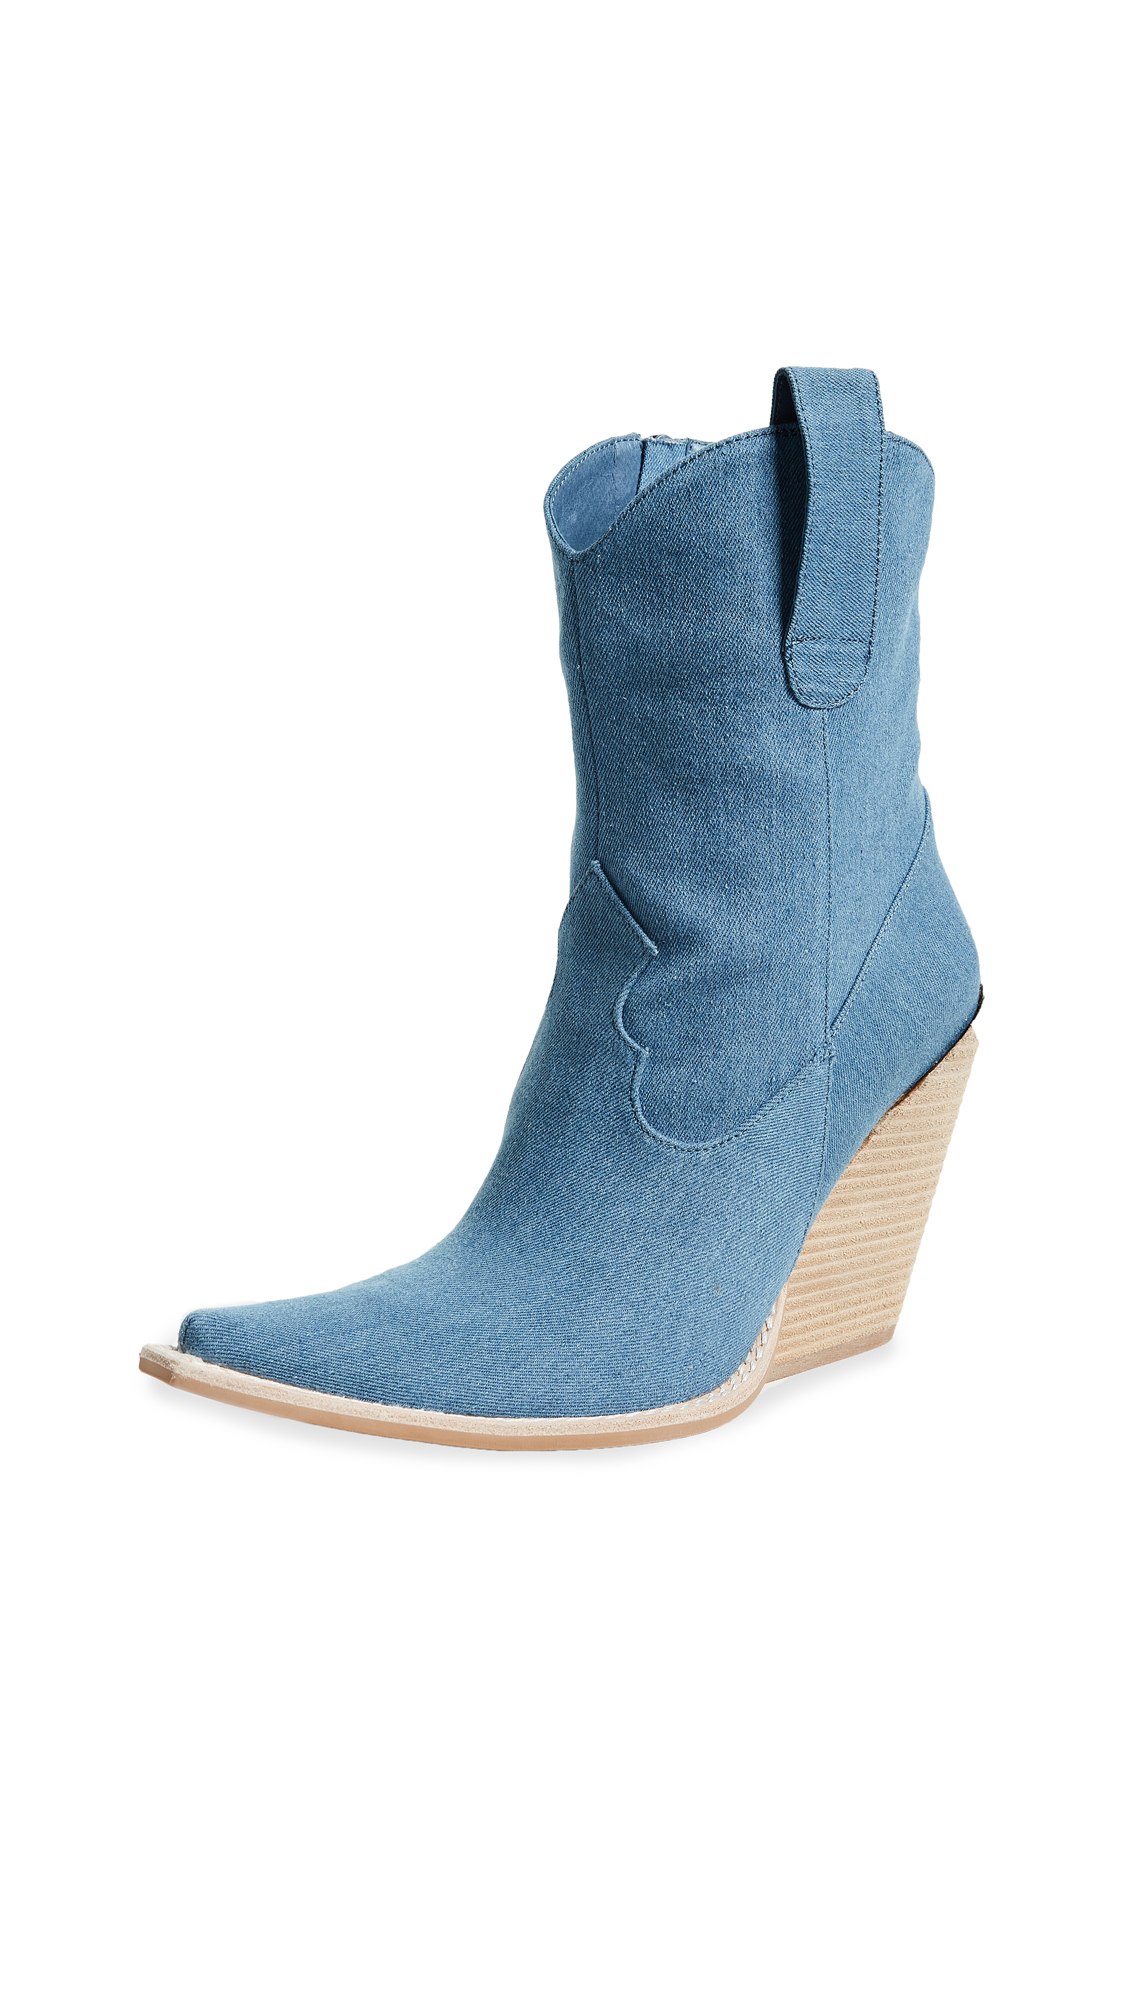 Jeffrey Campbell Homage Point Toe Boots - Denim